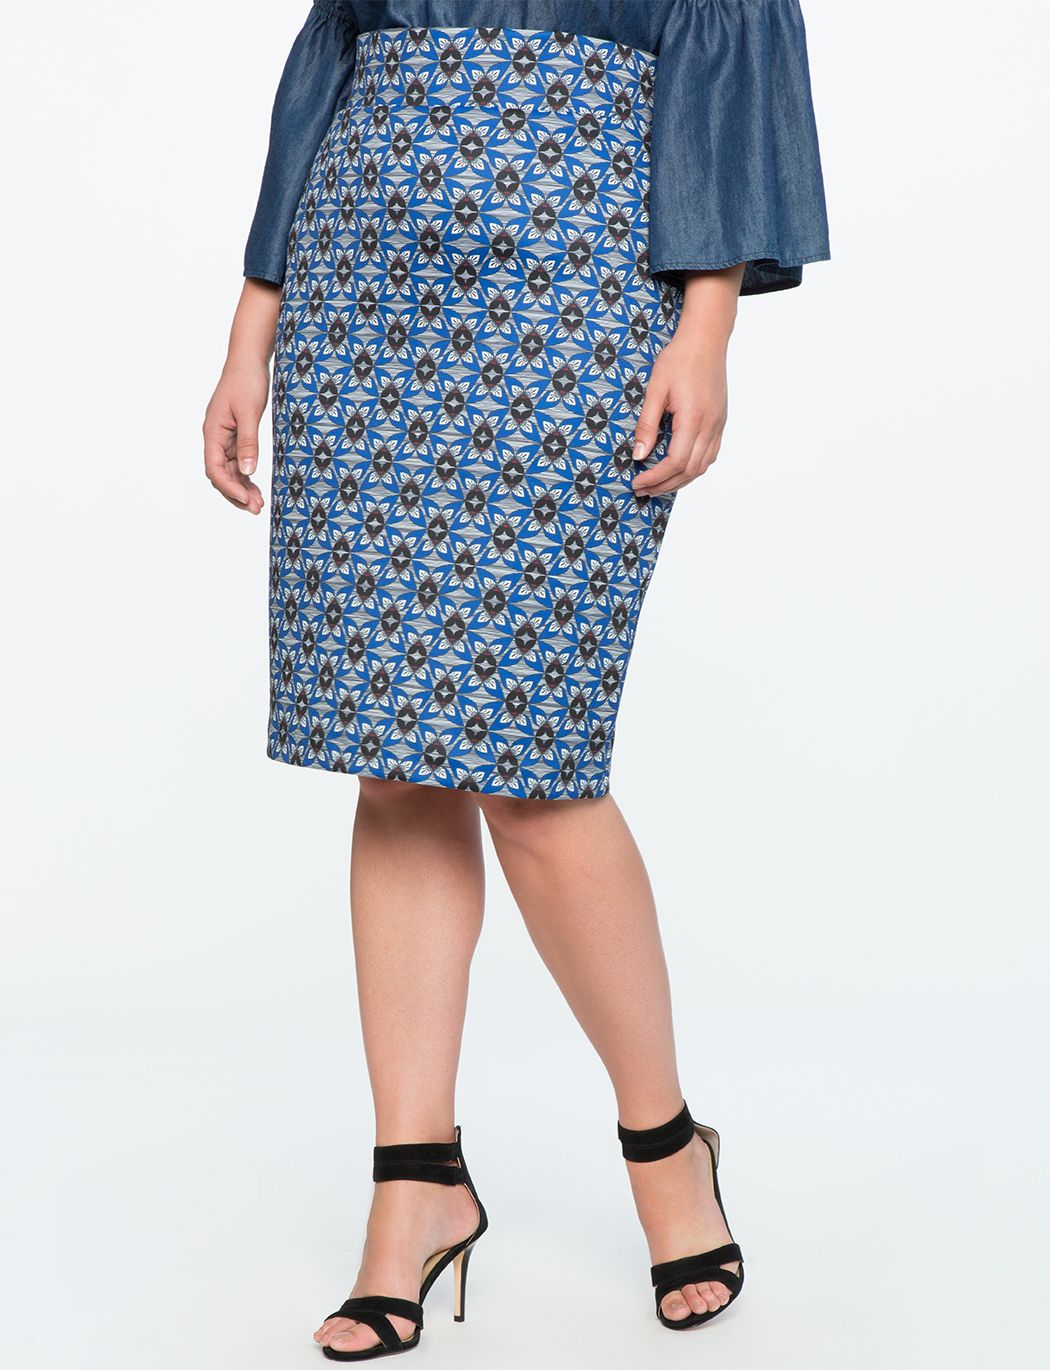 afb3827c879938 Neoprene Pencil Skirt Butterfly Effect Print Plus Size Skirts, New  Wardrobe, Plus Size Women